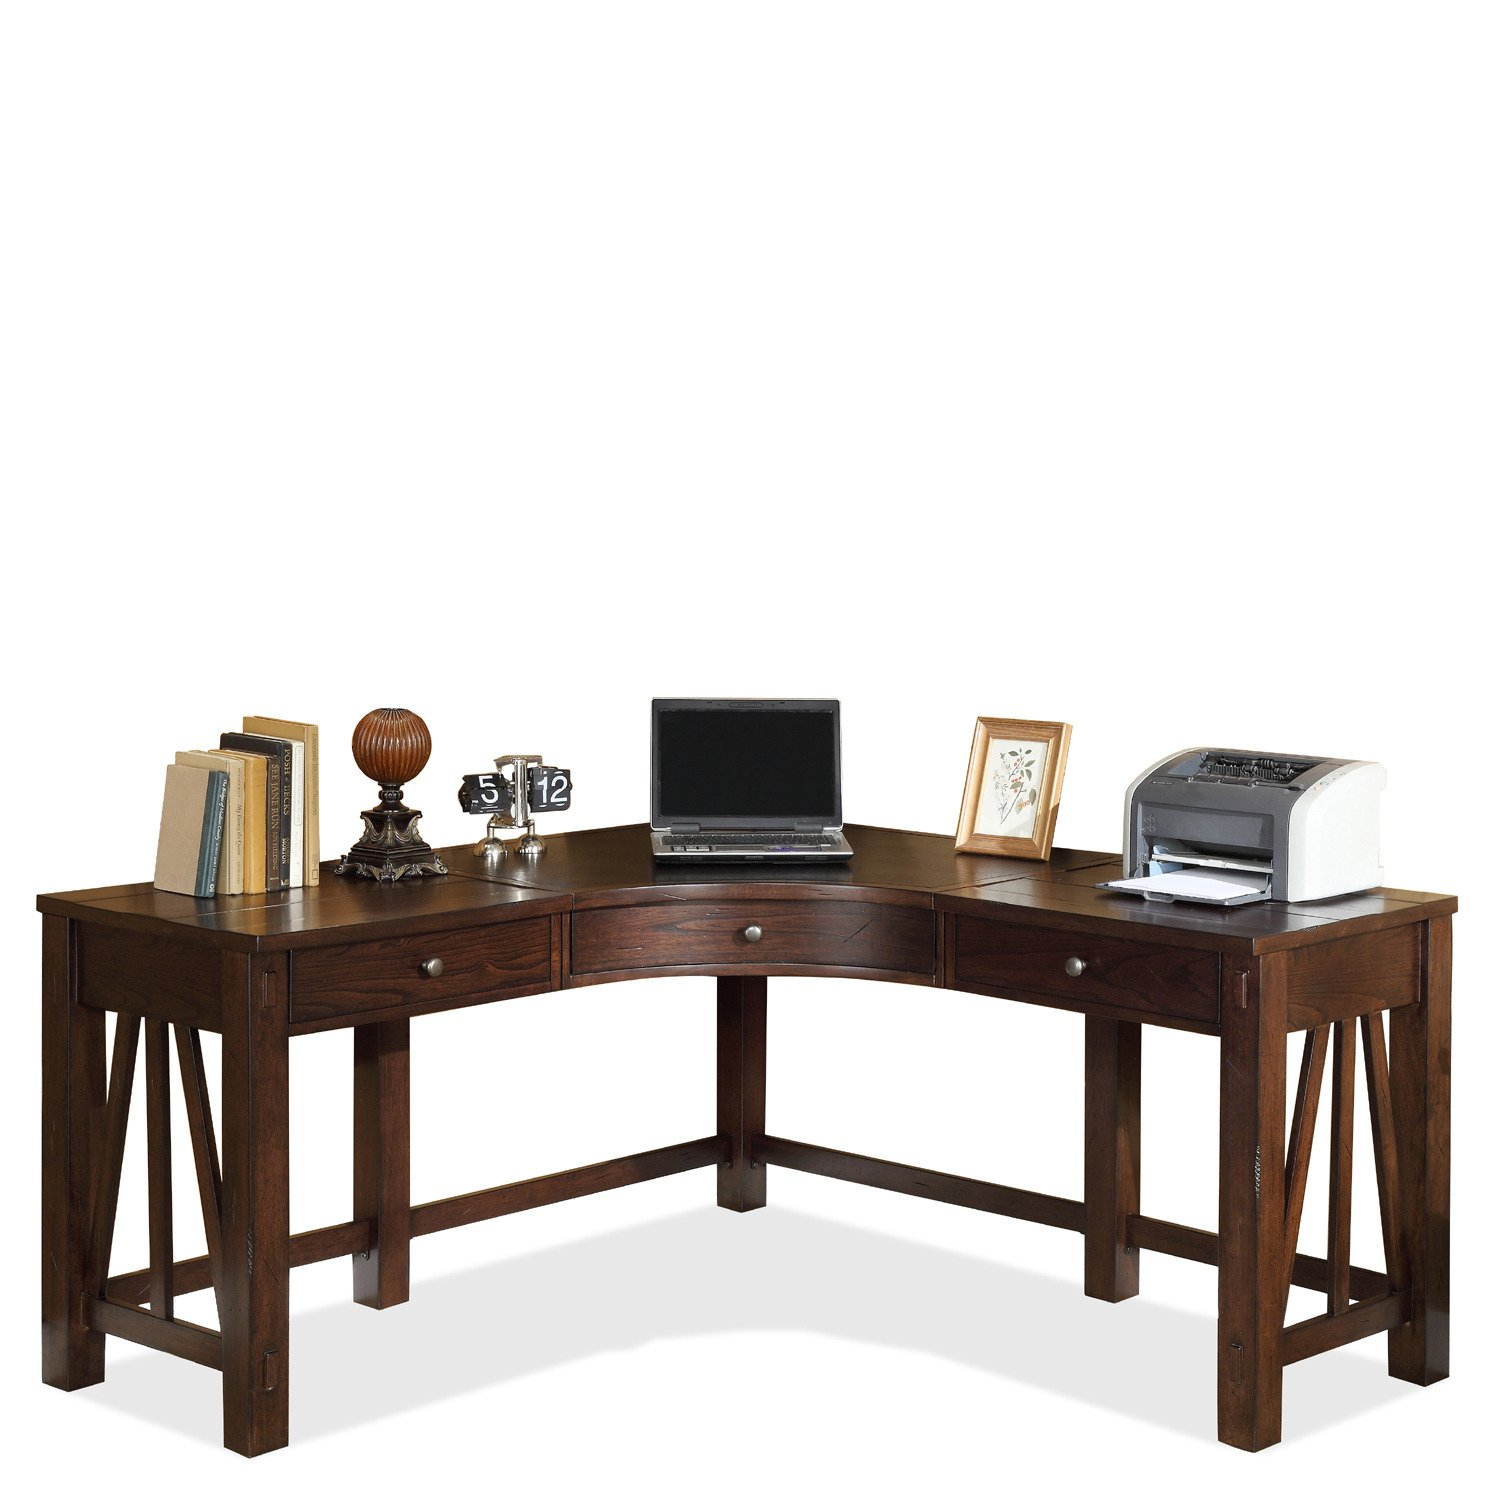 amazoncom riverside furniture castlewood corner desk in warm tobacco kitchen dining